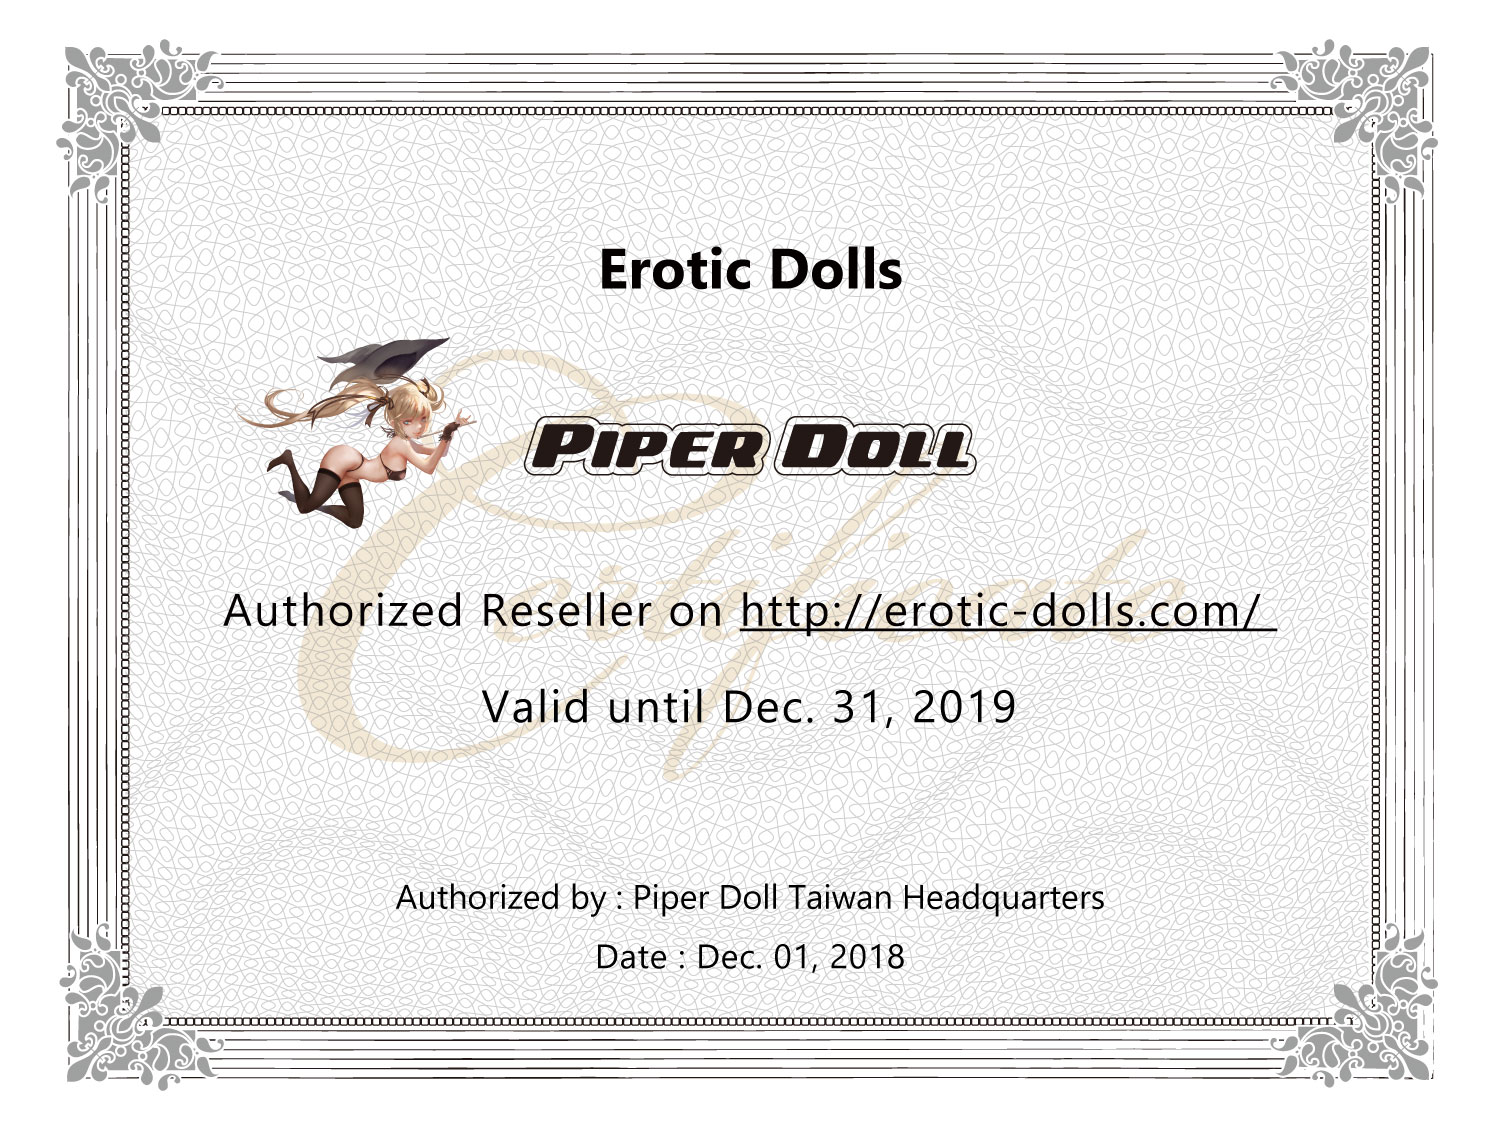 Piper Doll authorized reseller Erotic-Dolls logo